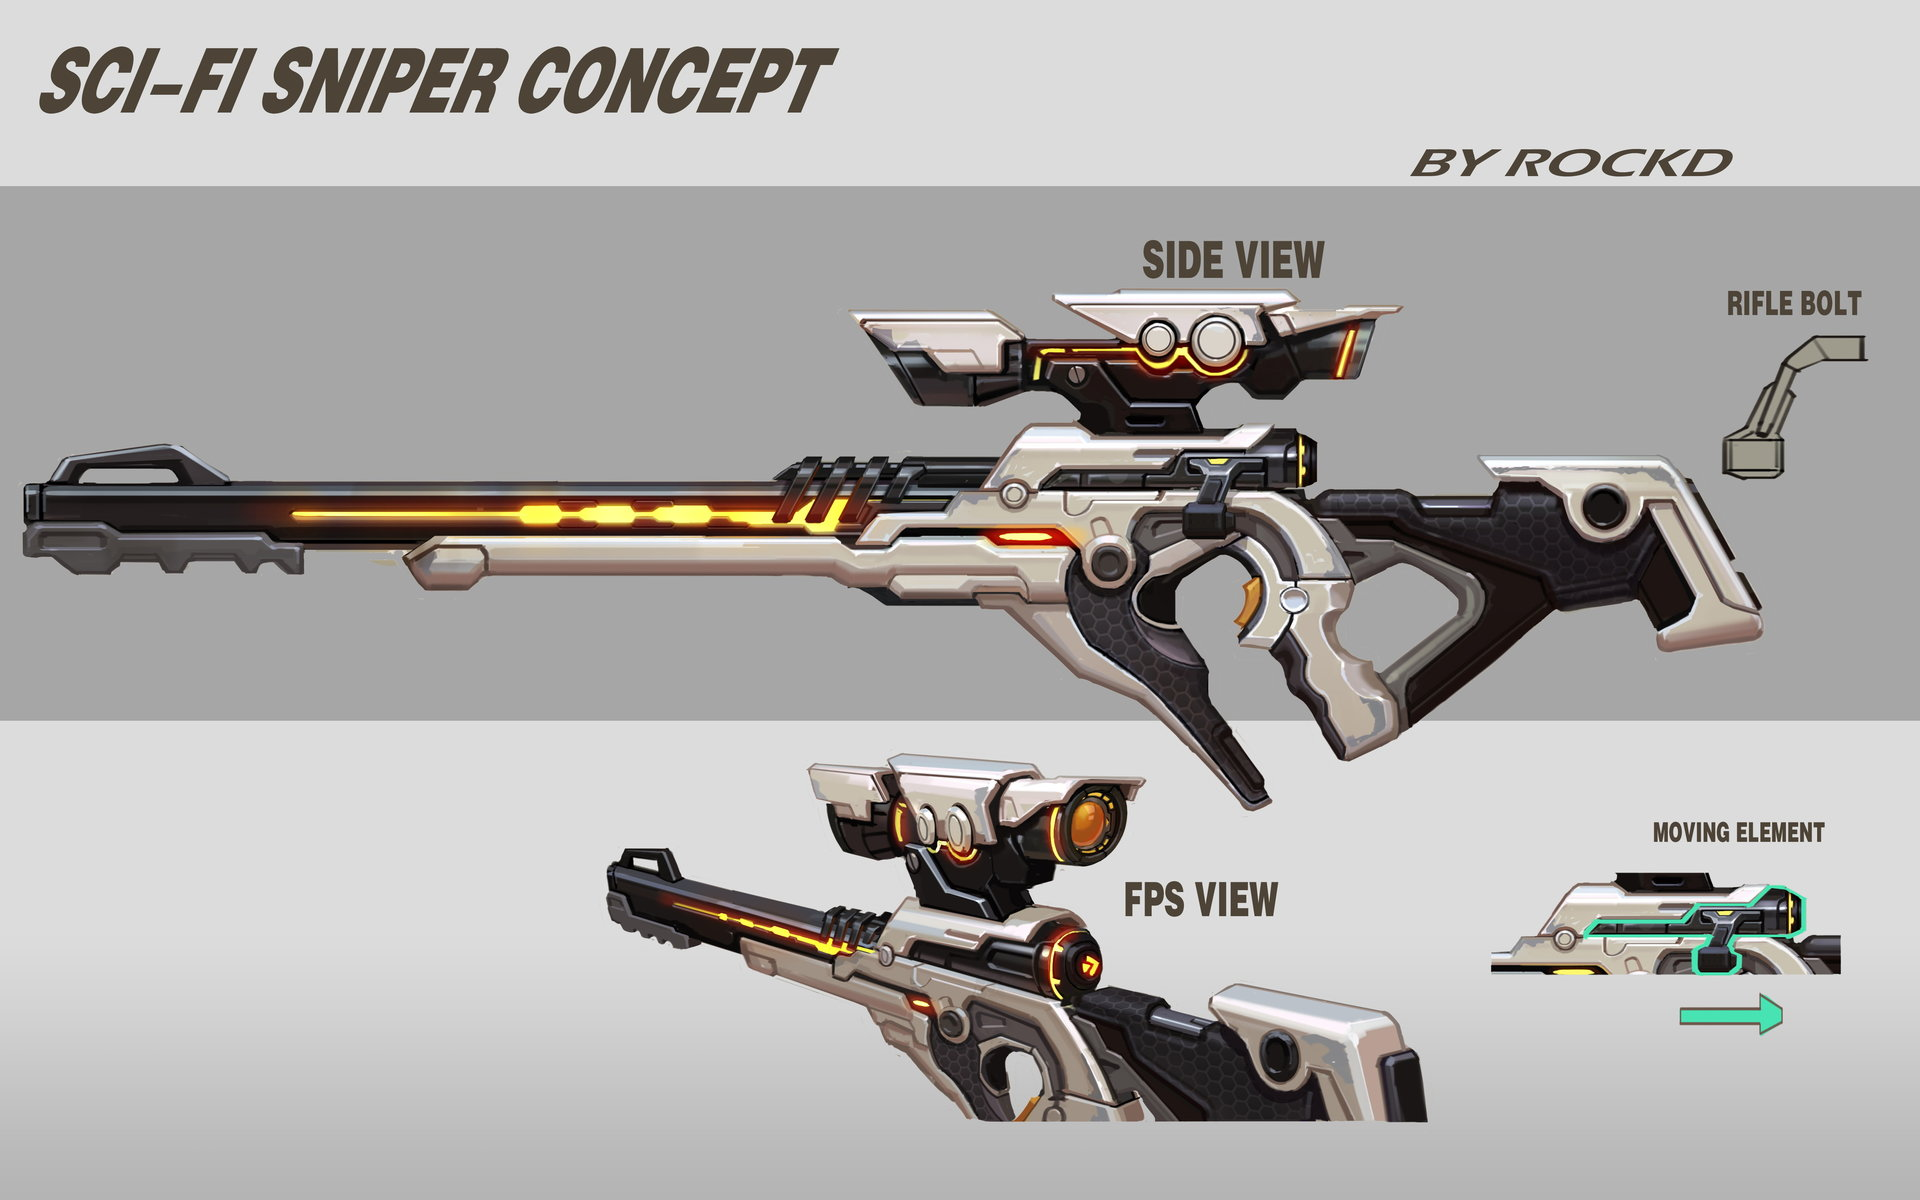 Rock d scifi sniper